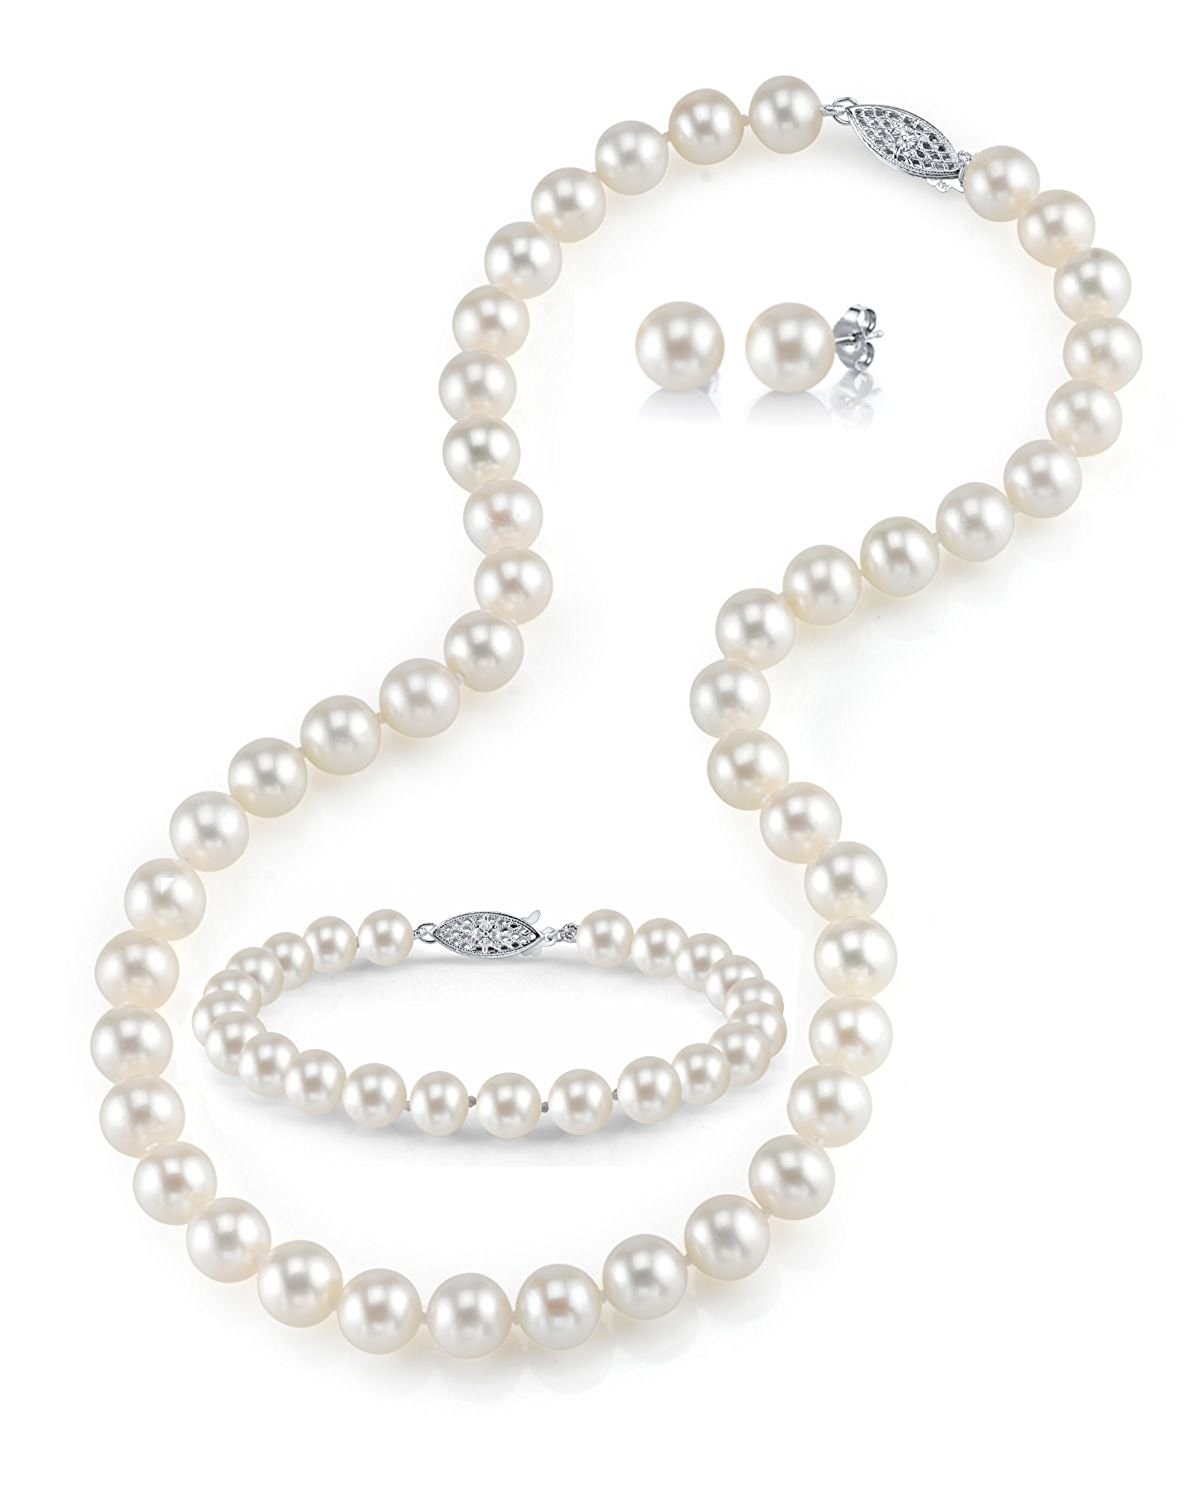 a5dde1a12 Get Quotations · 14K Gold 7-8mm White Freshwater Cultured Pearl Necklace,  Bracelet & Earrings Set,